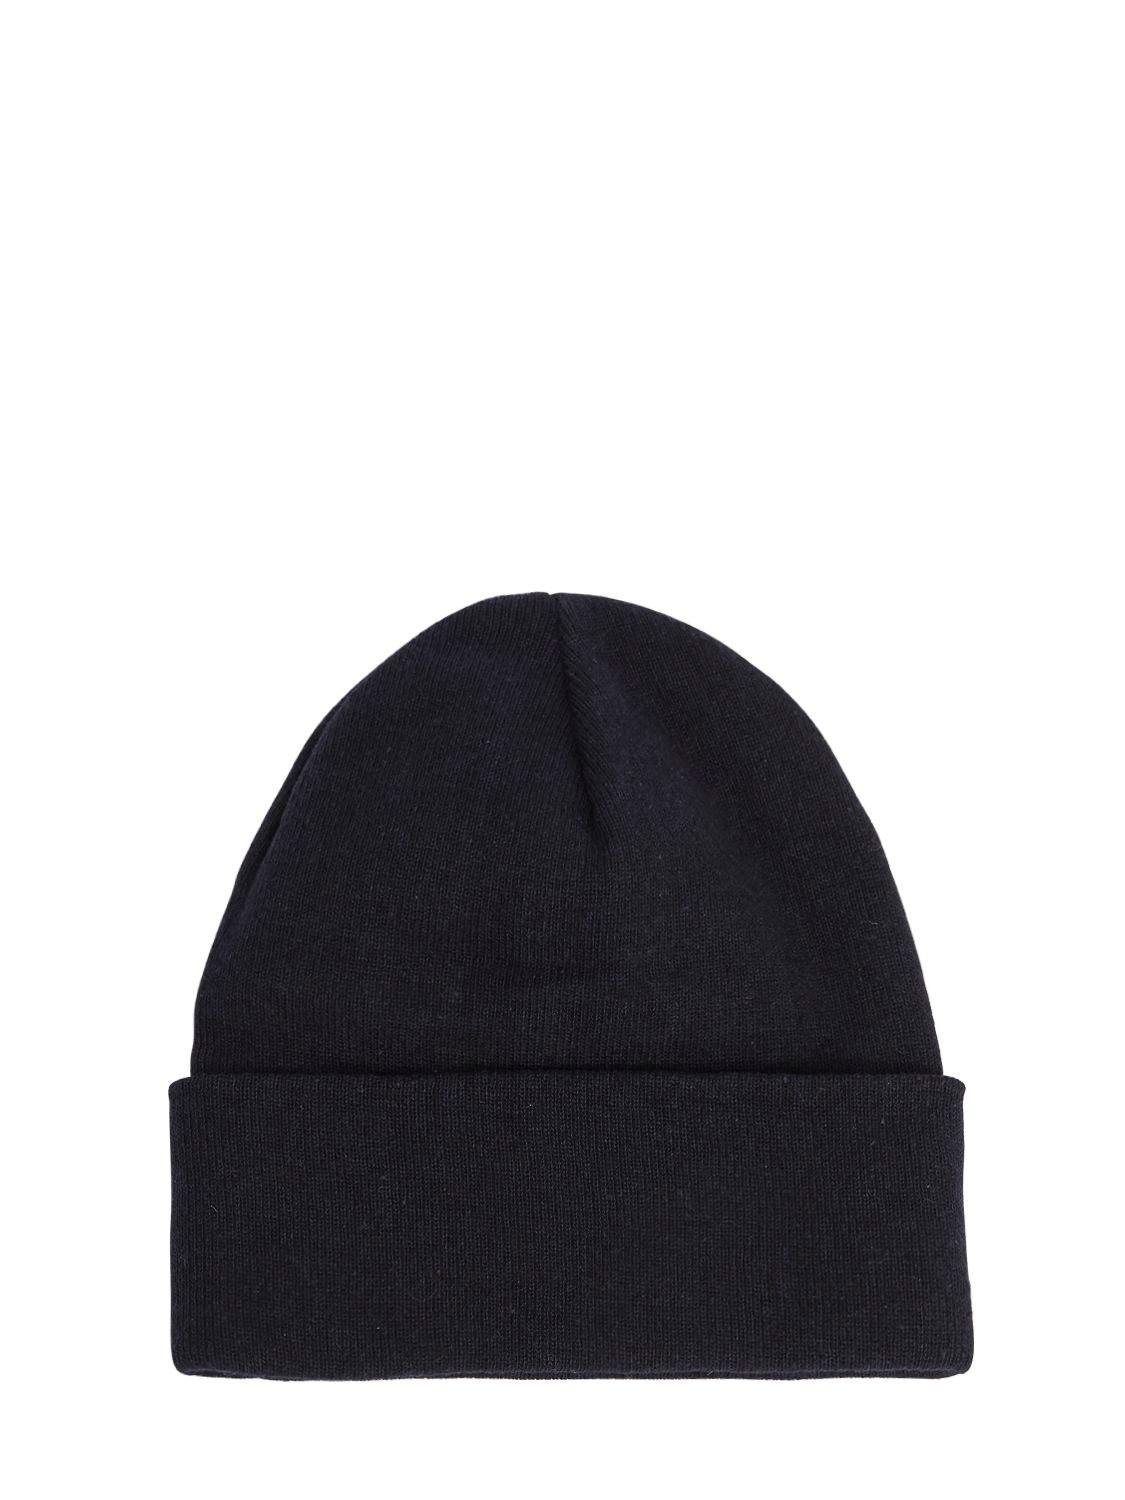 4f349b66 Levi's Snoopy Embroidered Knit Beanie Hat in Blue for Men - Lyst